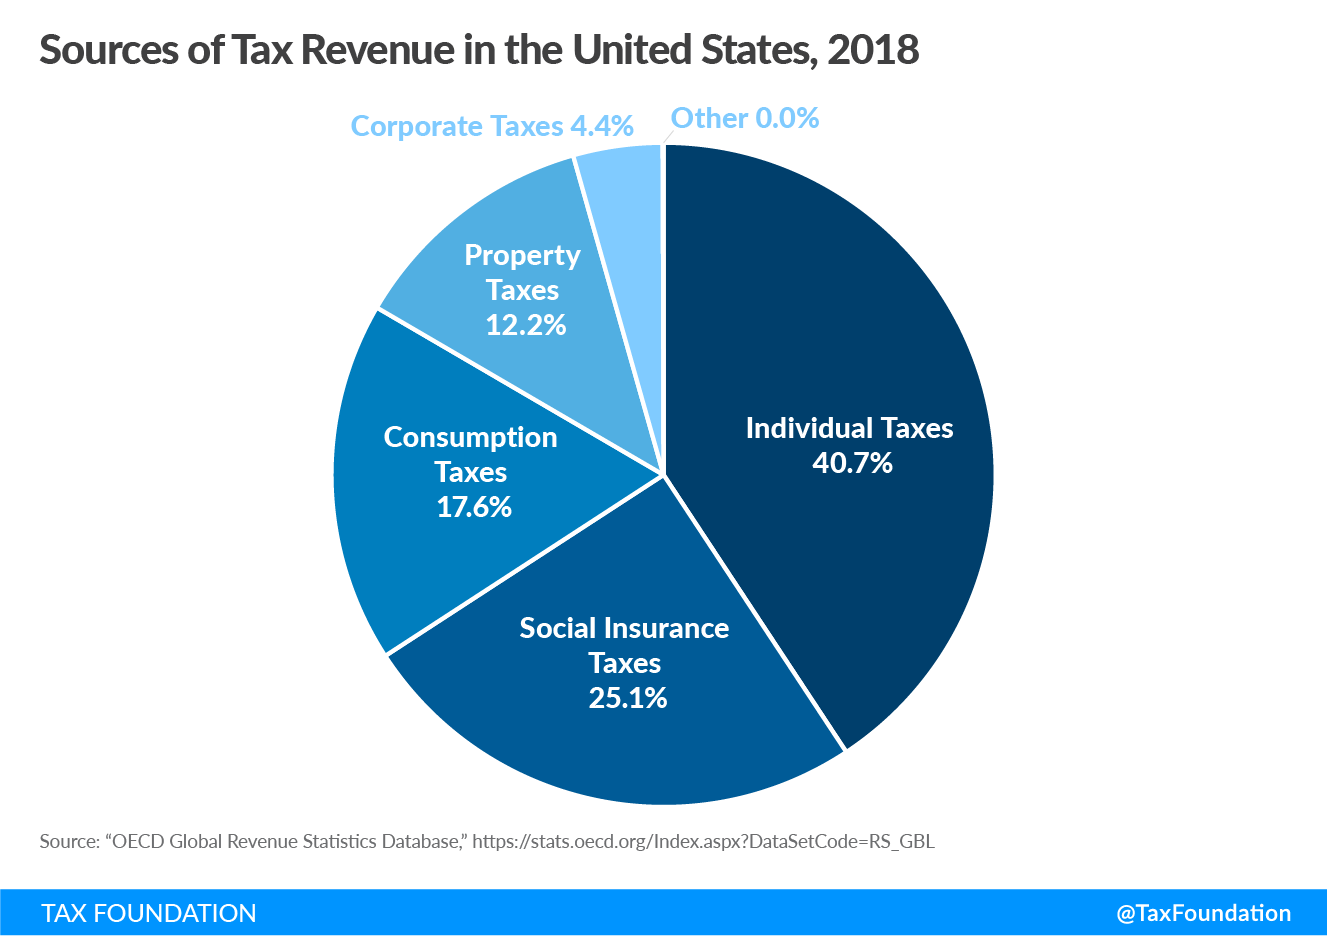 Sources of Tax Revenue in the United States